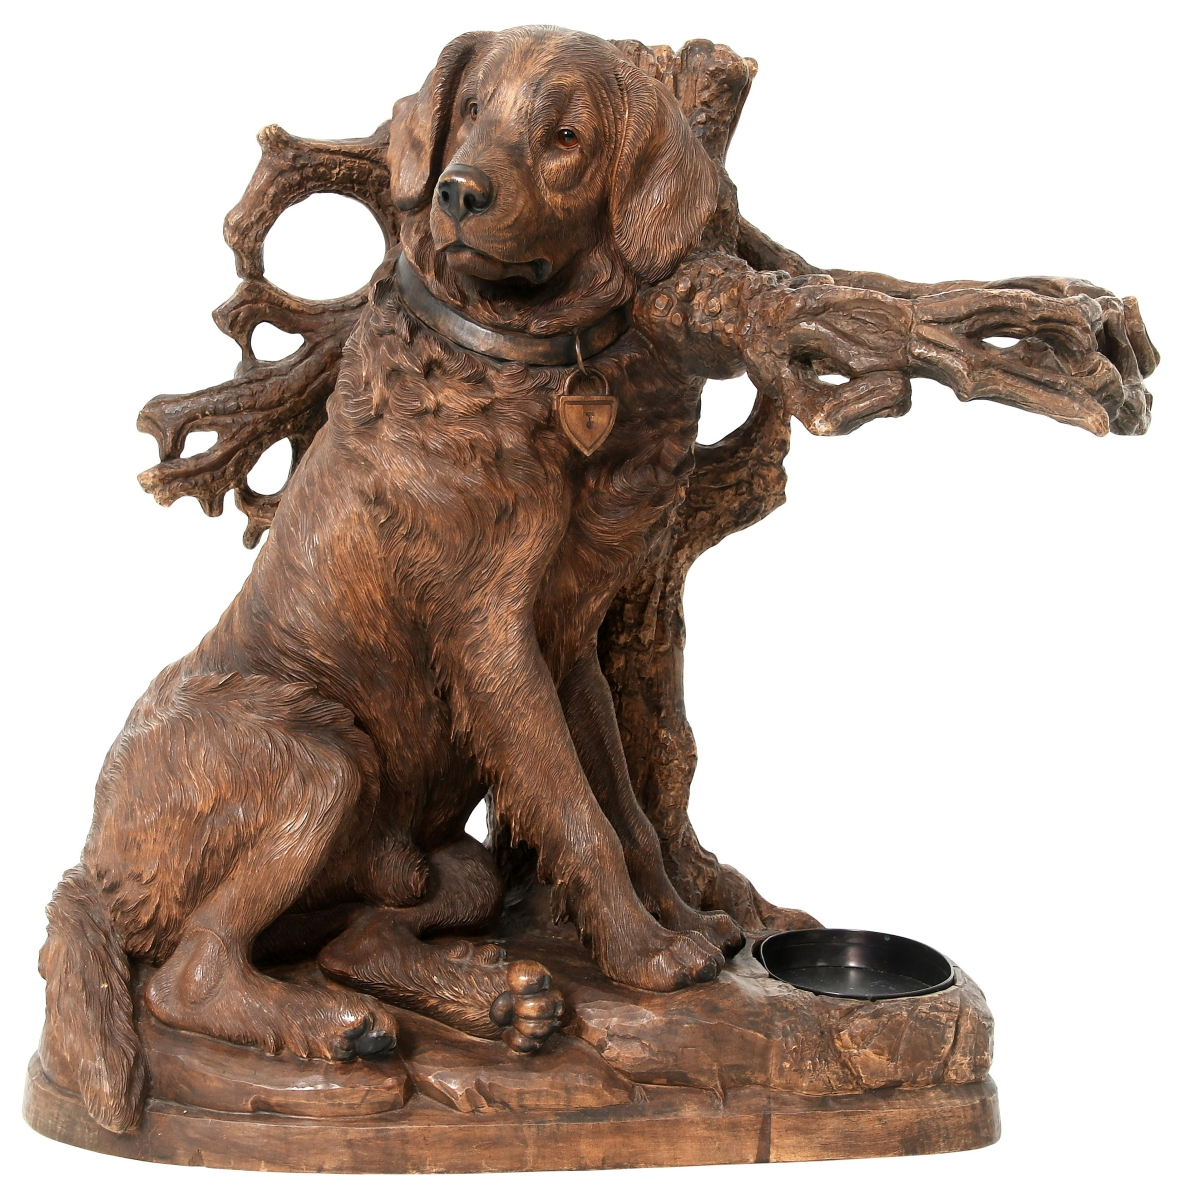 With a winsome stance that any Black Forest carving collector would love, this Twentieth Century carved dog umbrella stand was a surprise, leading Fontaine's second session sale at $51,425 with 58 bids taking it way past its $10/15,000 estimate.